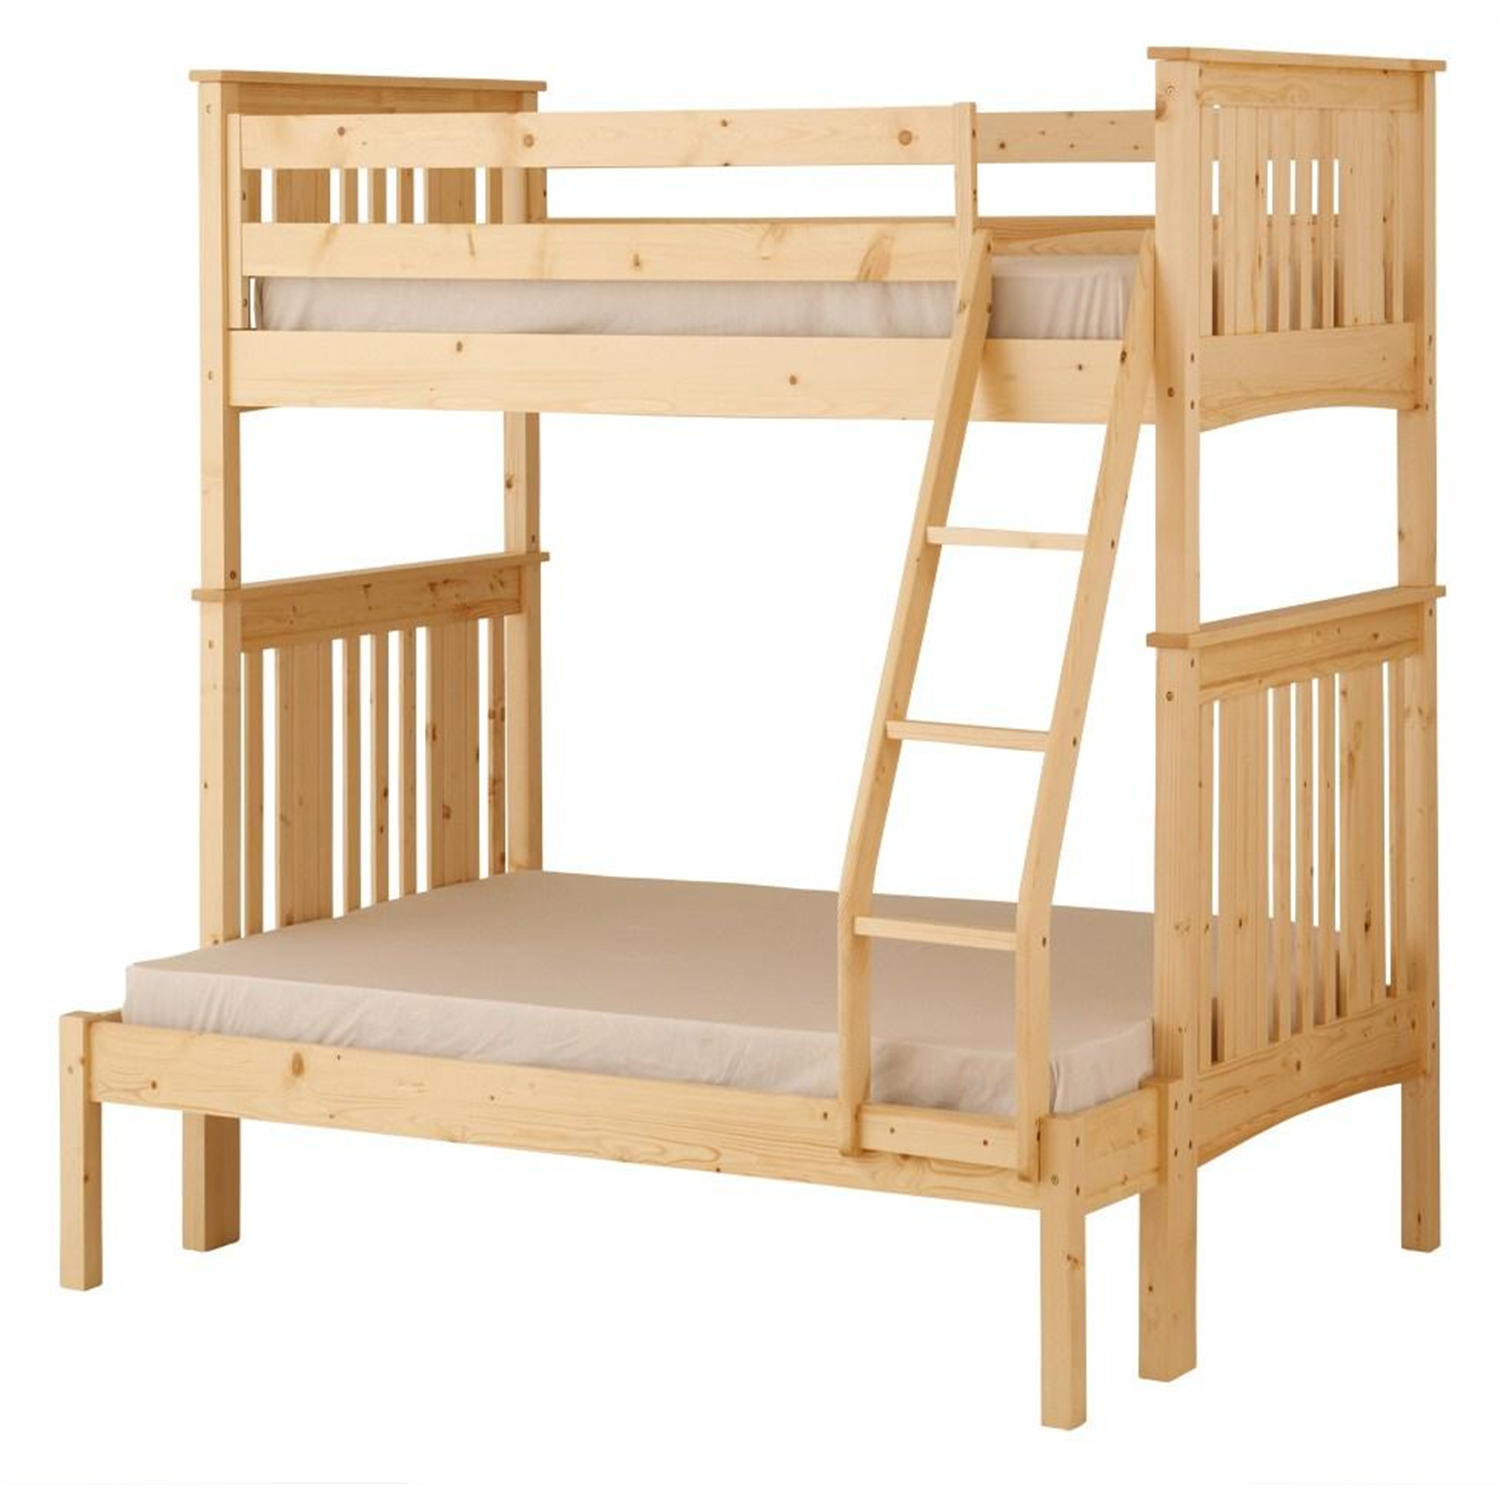 Canwood Base Camp Twin Over Twin Bunk Bed